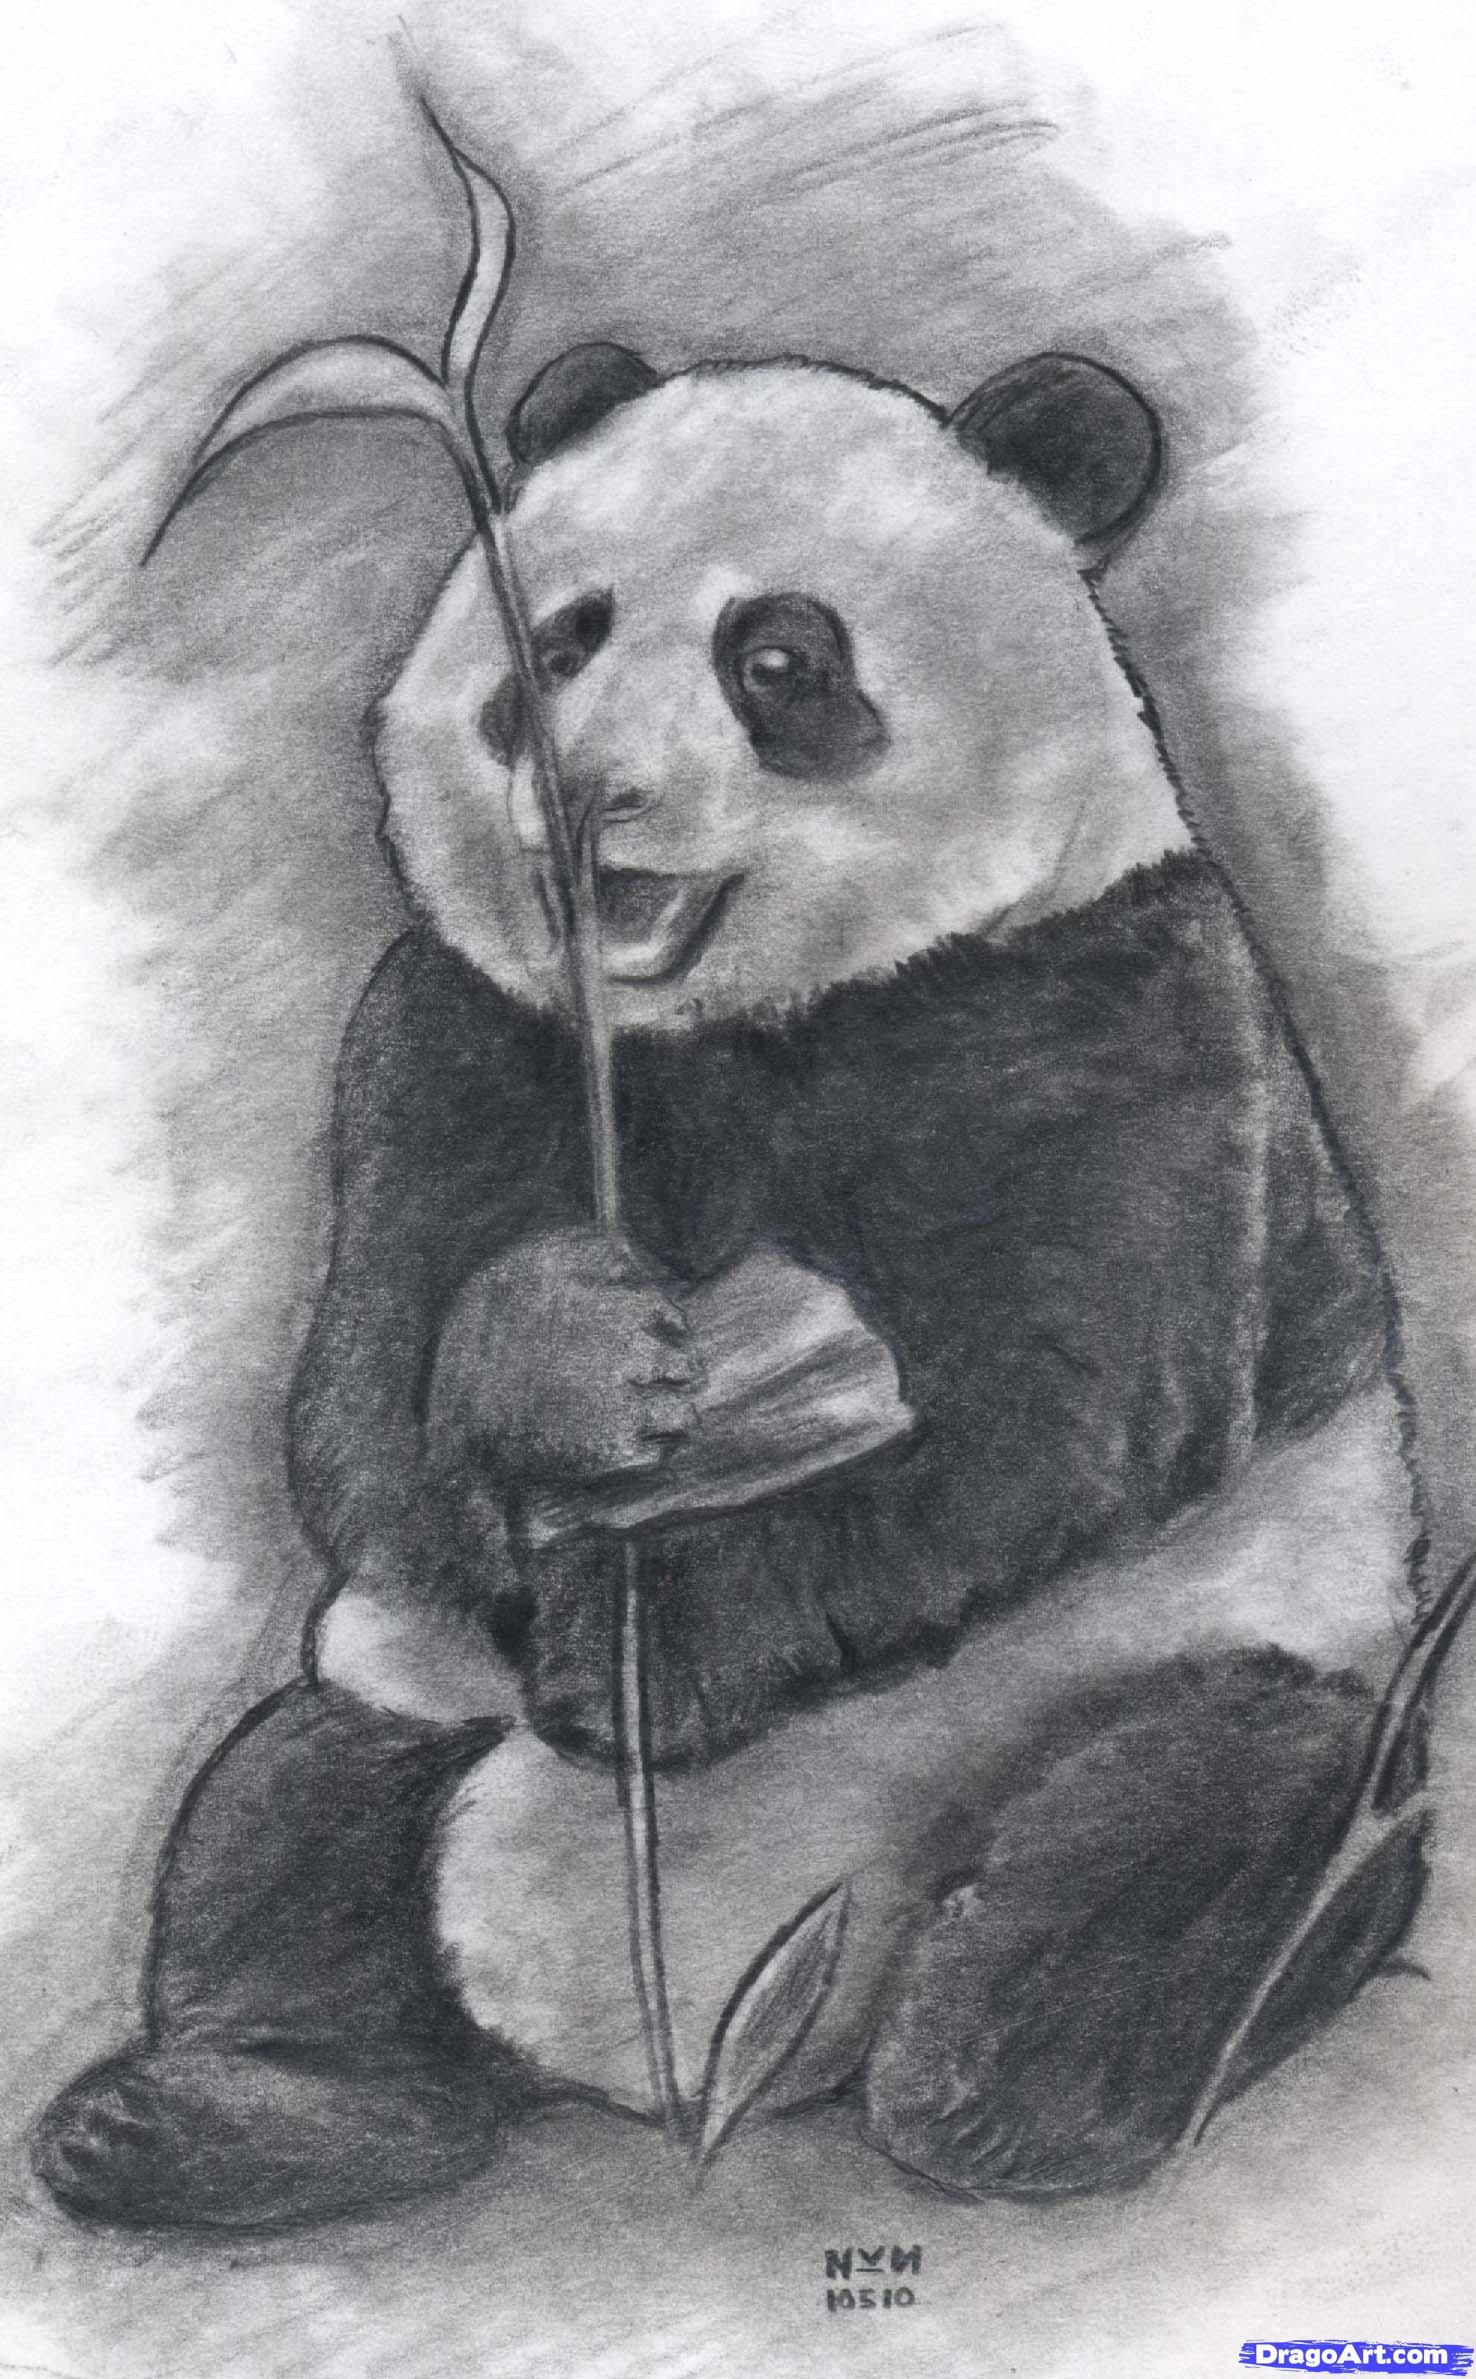 How to draw a realistic panda draw real panda step by step